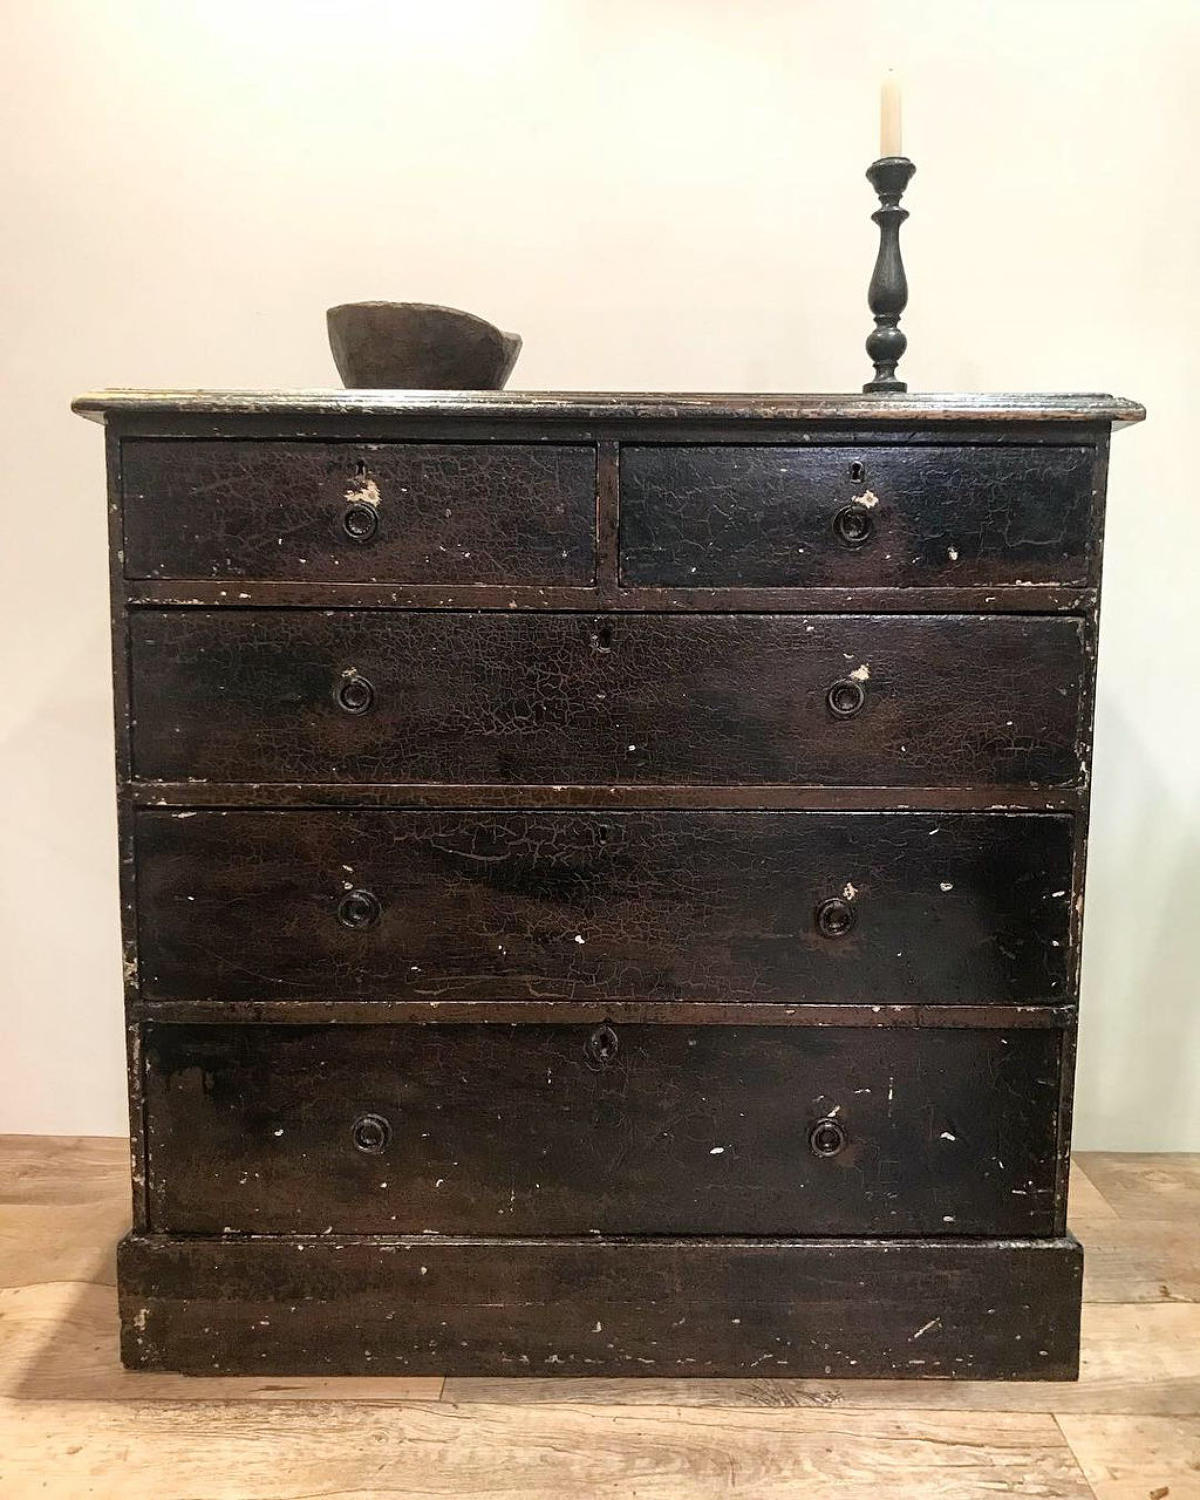 ORIGINAL PAINTED GEORGIAN CHEST OF DRAWERS